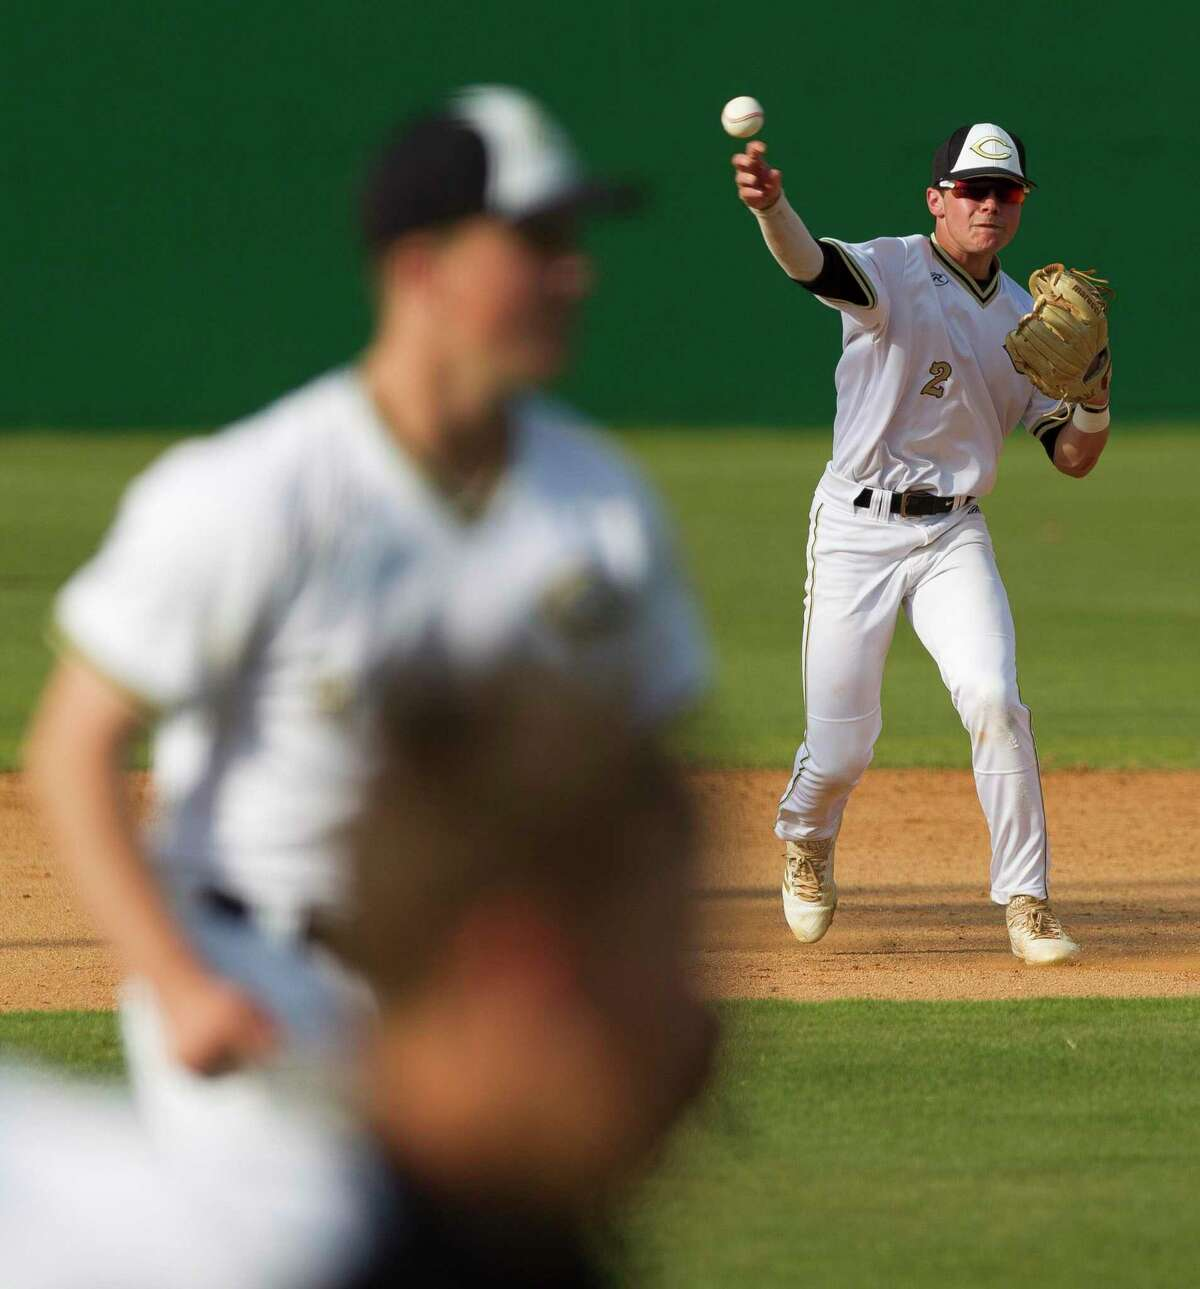 Conroe shortstop Tyler Linneweber (2) throws out Cole Davis #15 of Tomball Memorial in the fourth inning of a game during the Klein Tomball Tournament, Saturday, March 10, 2018, in Tomball.